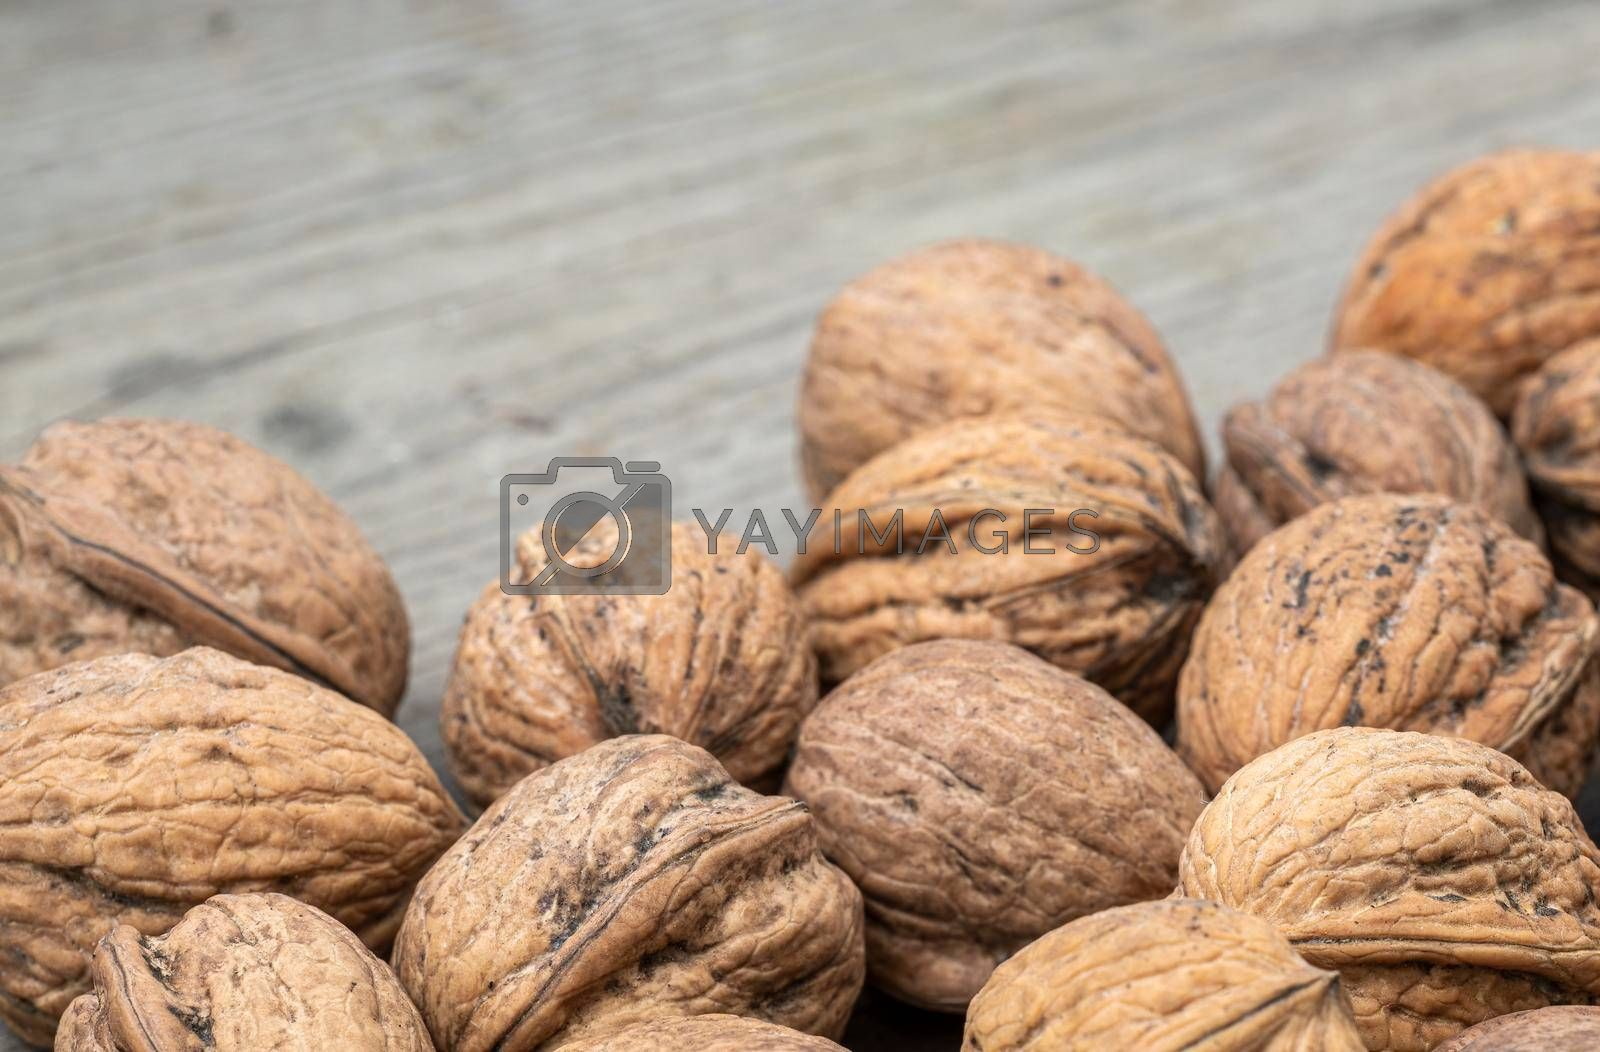 Royalty free image of Walnuts on a wooden board  by Tofotografie